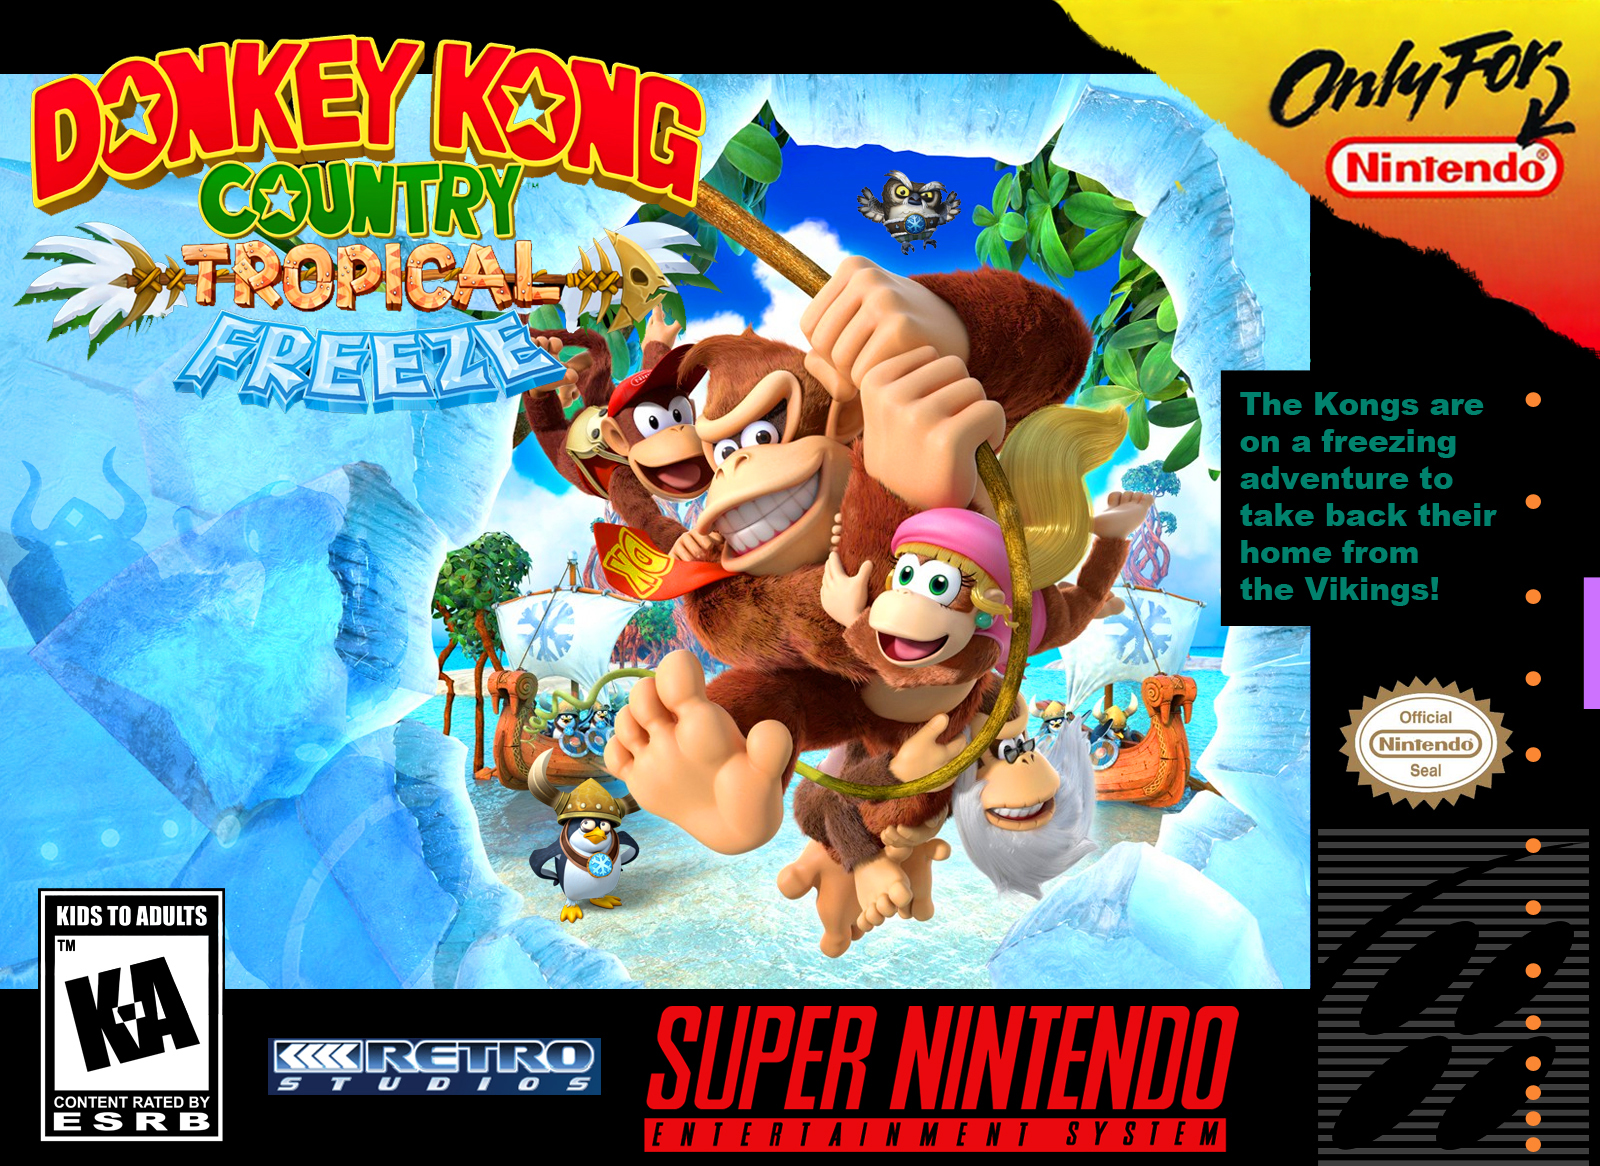 Donkey Kong Country Tropical Freeze Snes Box By Greenmachine987